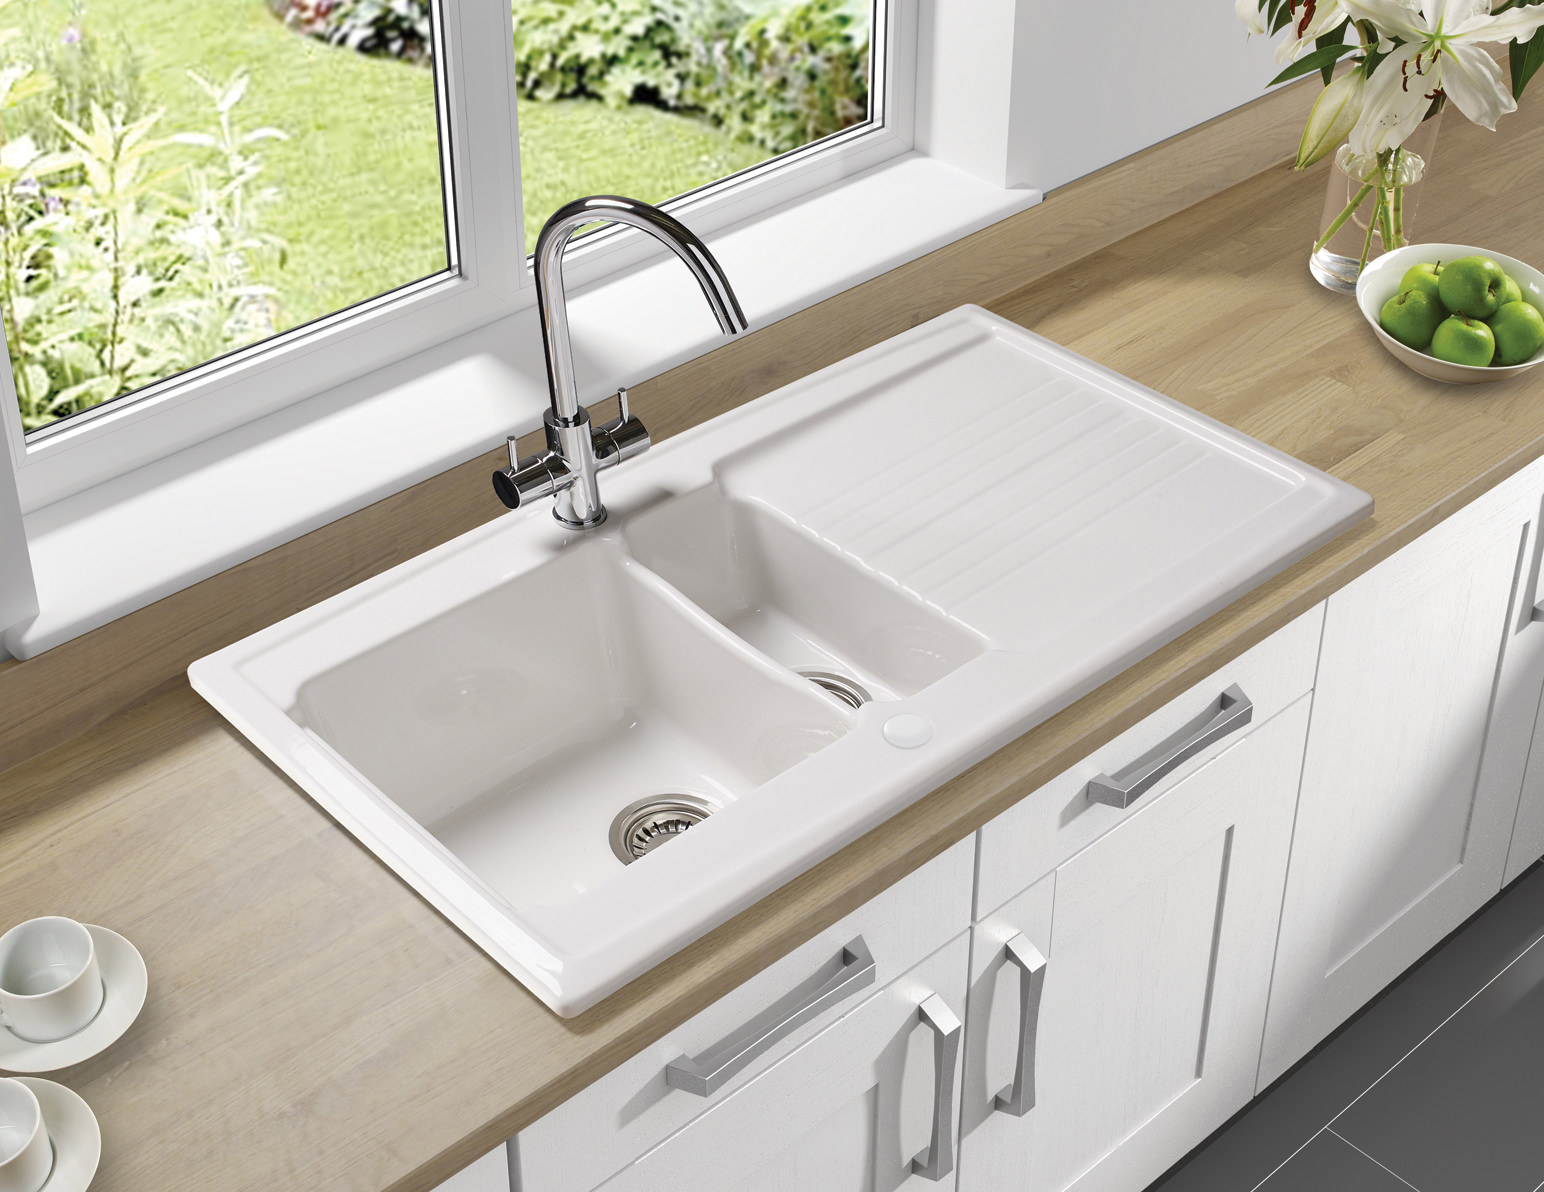 Ceramic Kitchen Sink Astracast Equinox 1 5 Bowl White Ceramic Inset Kitchen